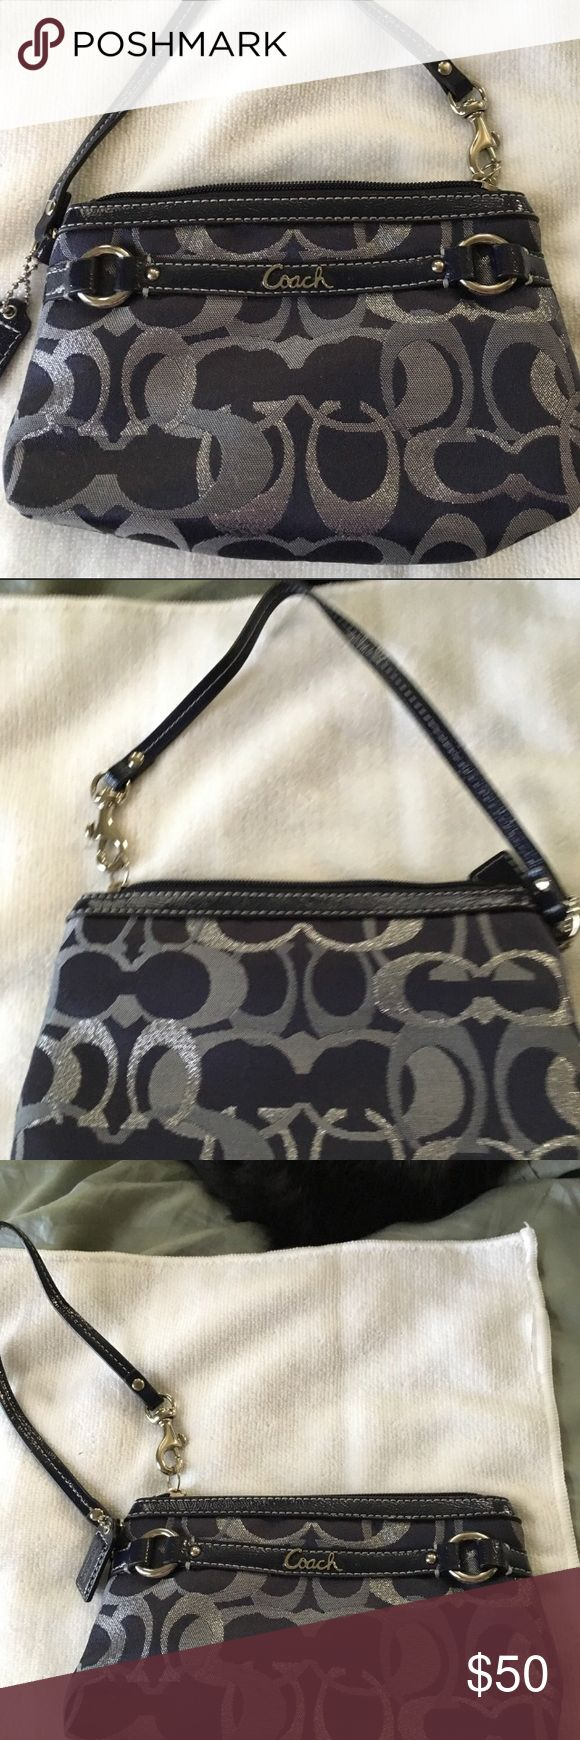 """NWOT Coach wristlet NWOT Coach wristlet. Navy blue with lighter blue and silver C's. Never used and in pristine condition inside and out. Measures approximately 7"""" x 5"""" Coach Bags Clutches & Wristlets"""